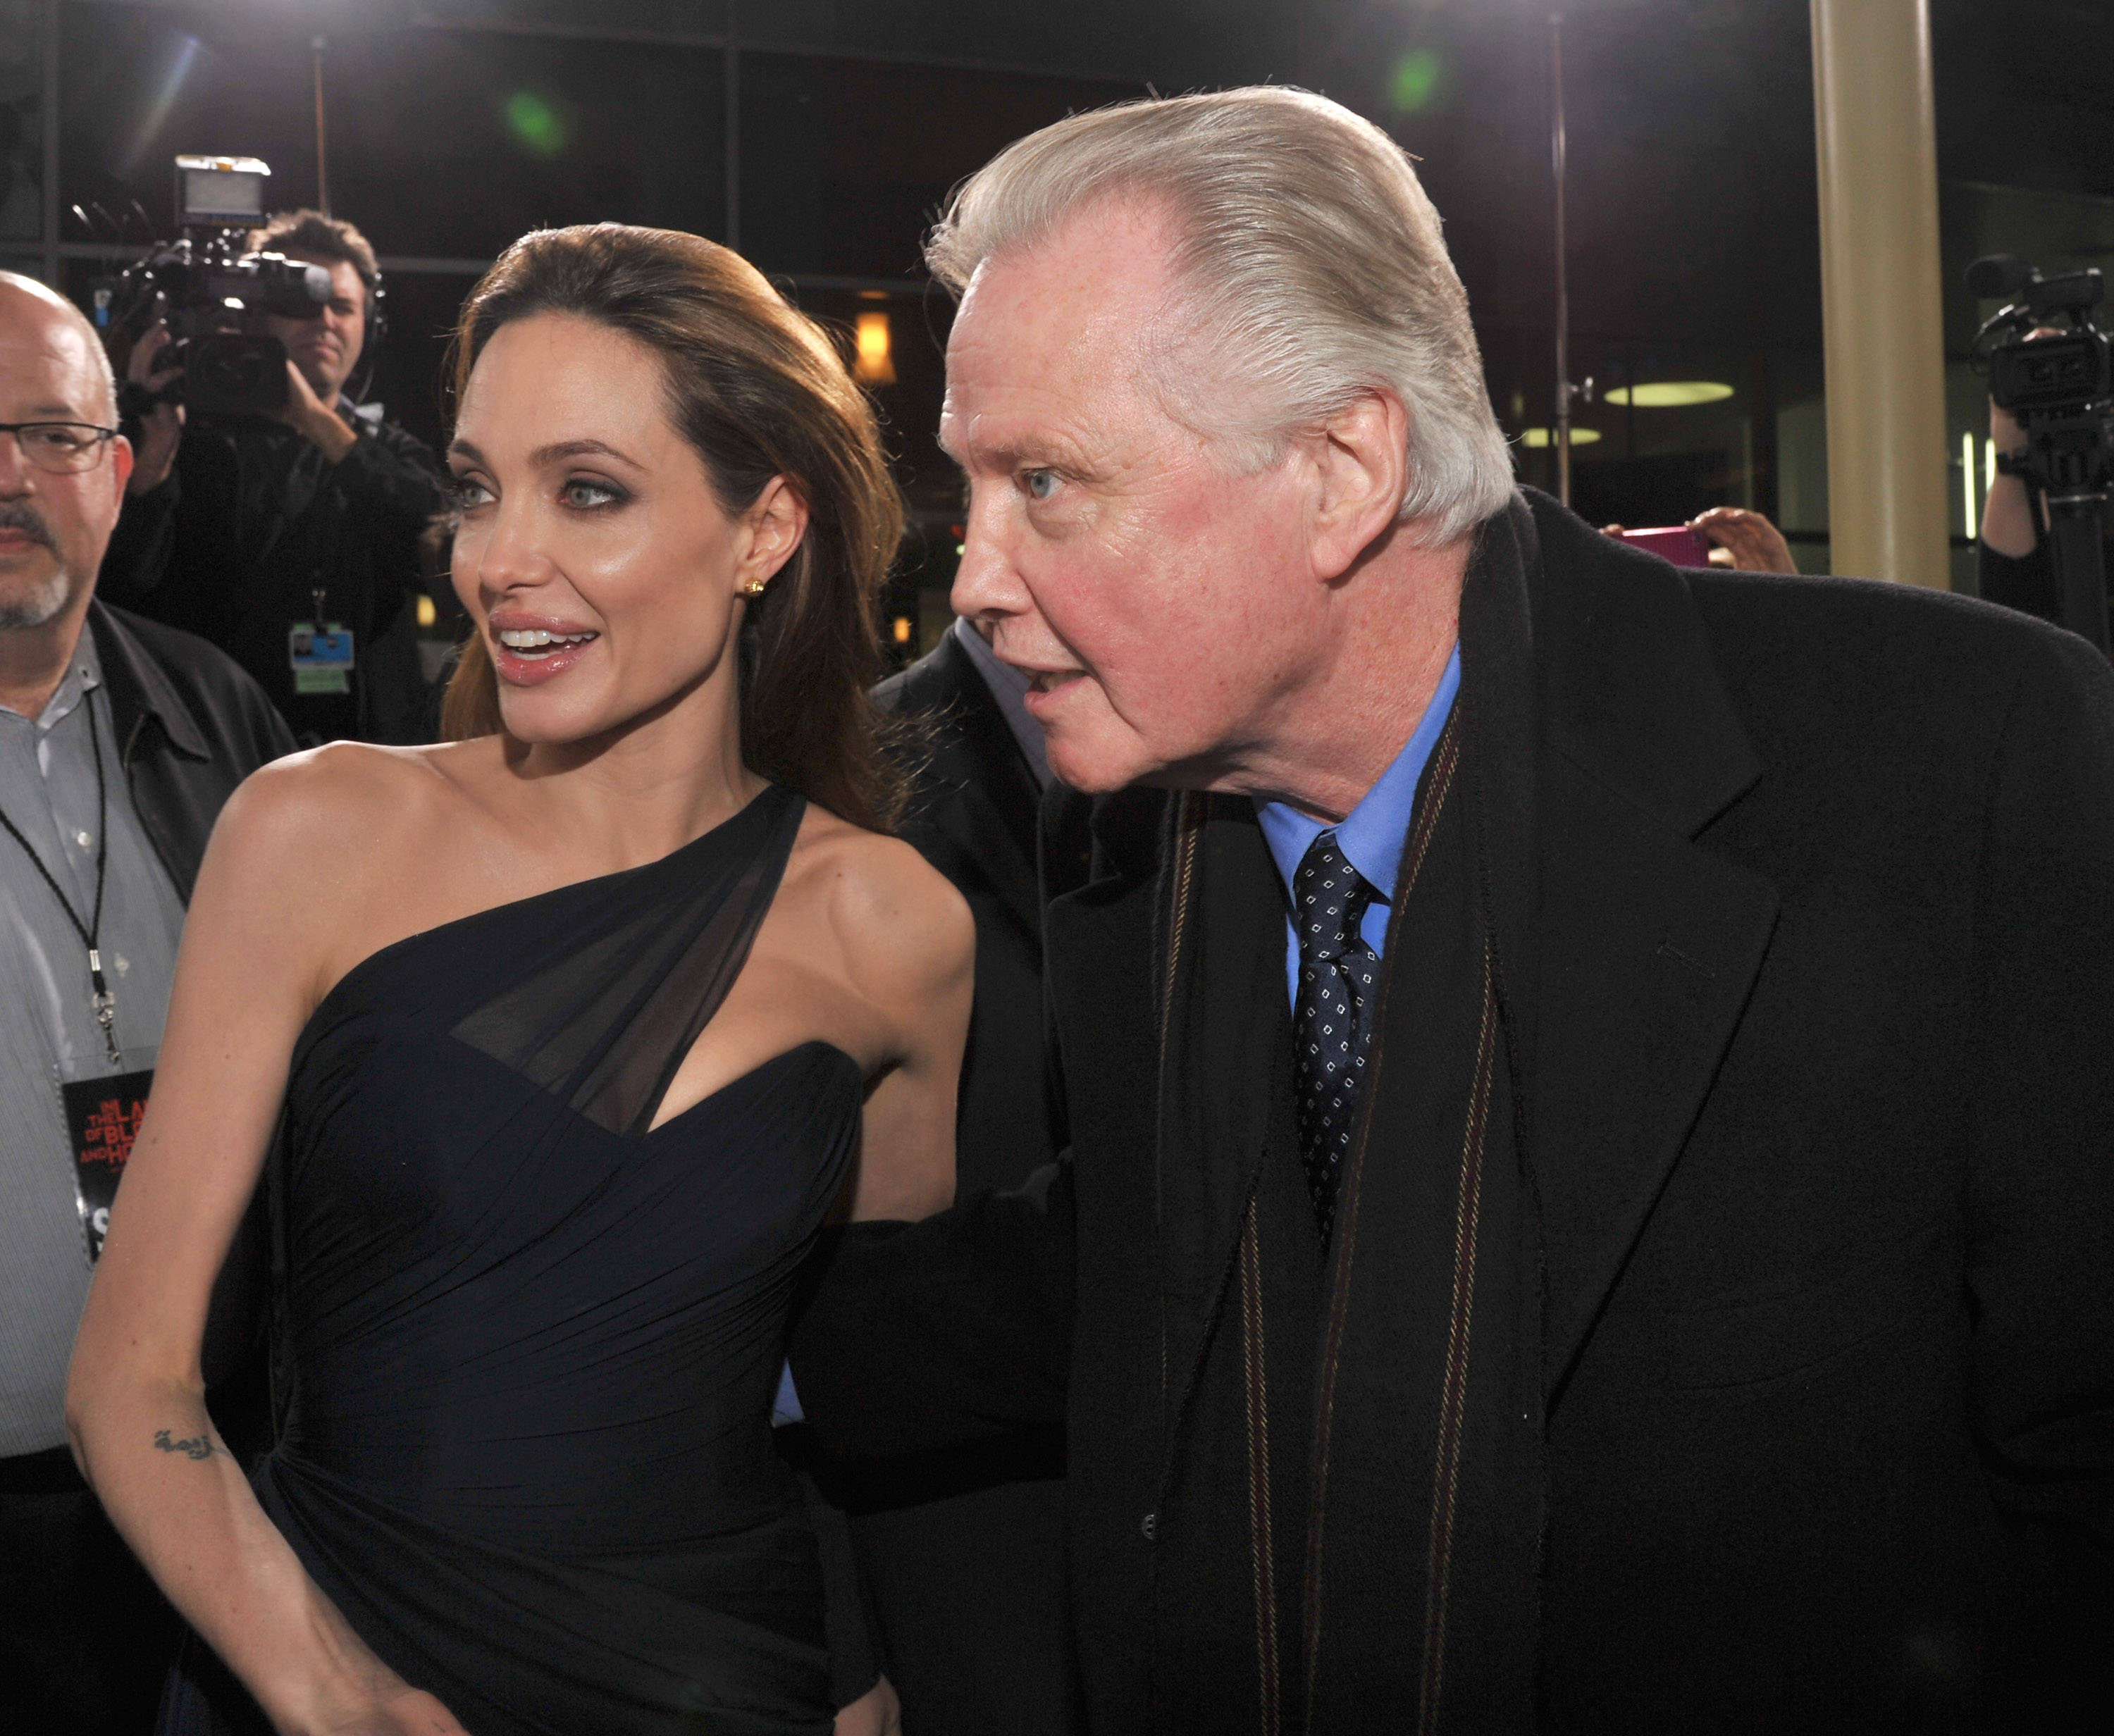 Angelina Jolie is the daughter of actor Jon Voight, who slammed Democrats in a Nov. 27 Twitter video. (Photo: Lester Cohen/WireImage)